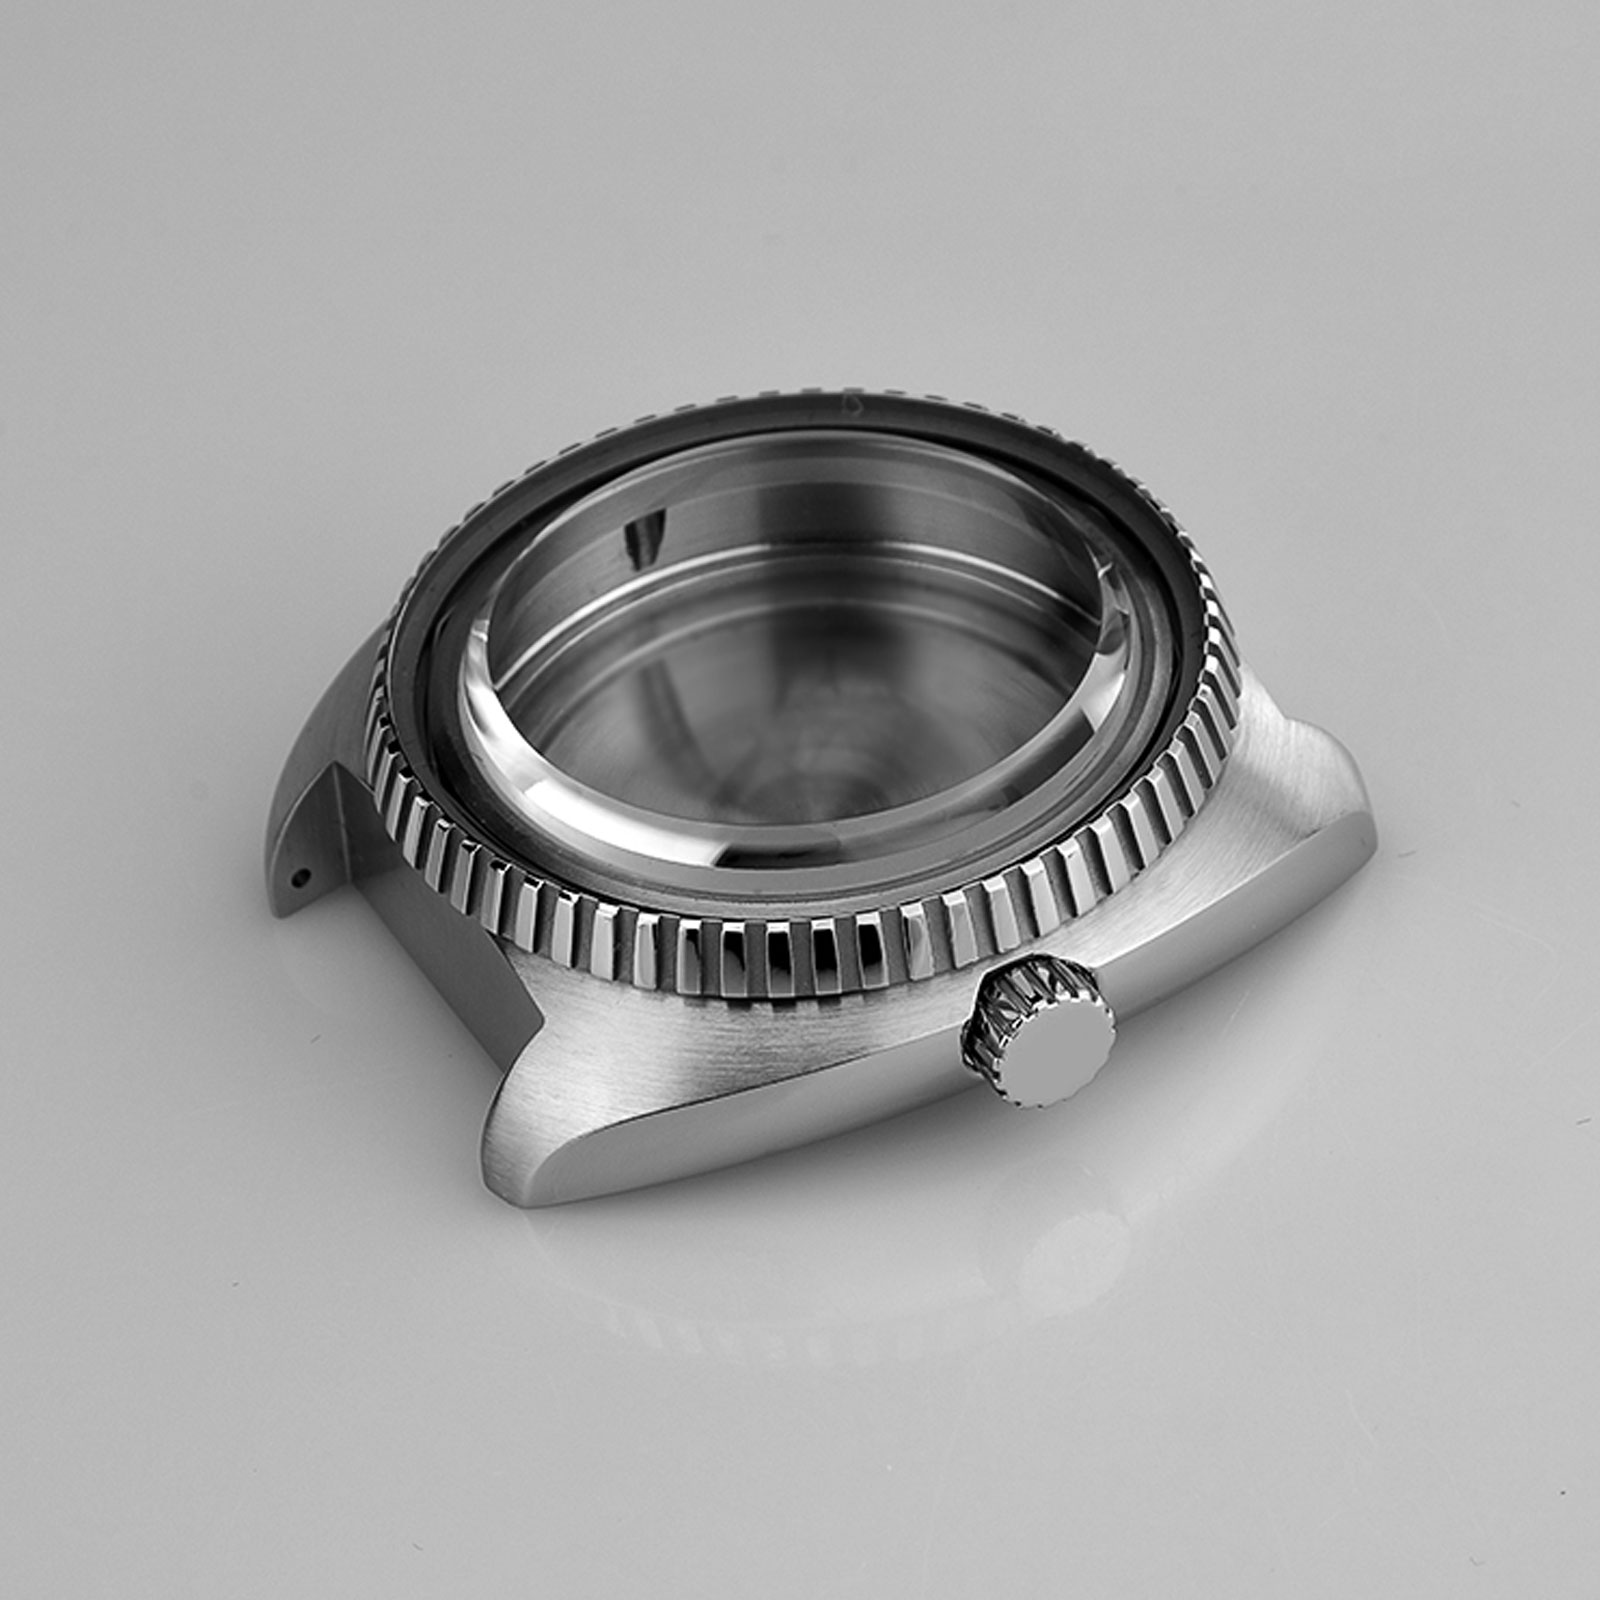 Simple Metal Watch Case With Large, Knurled Bezel